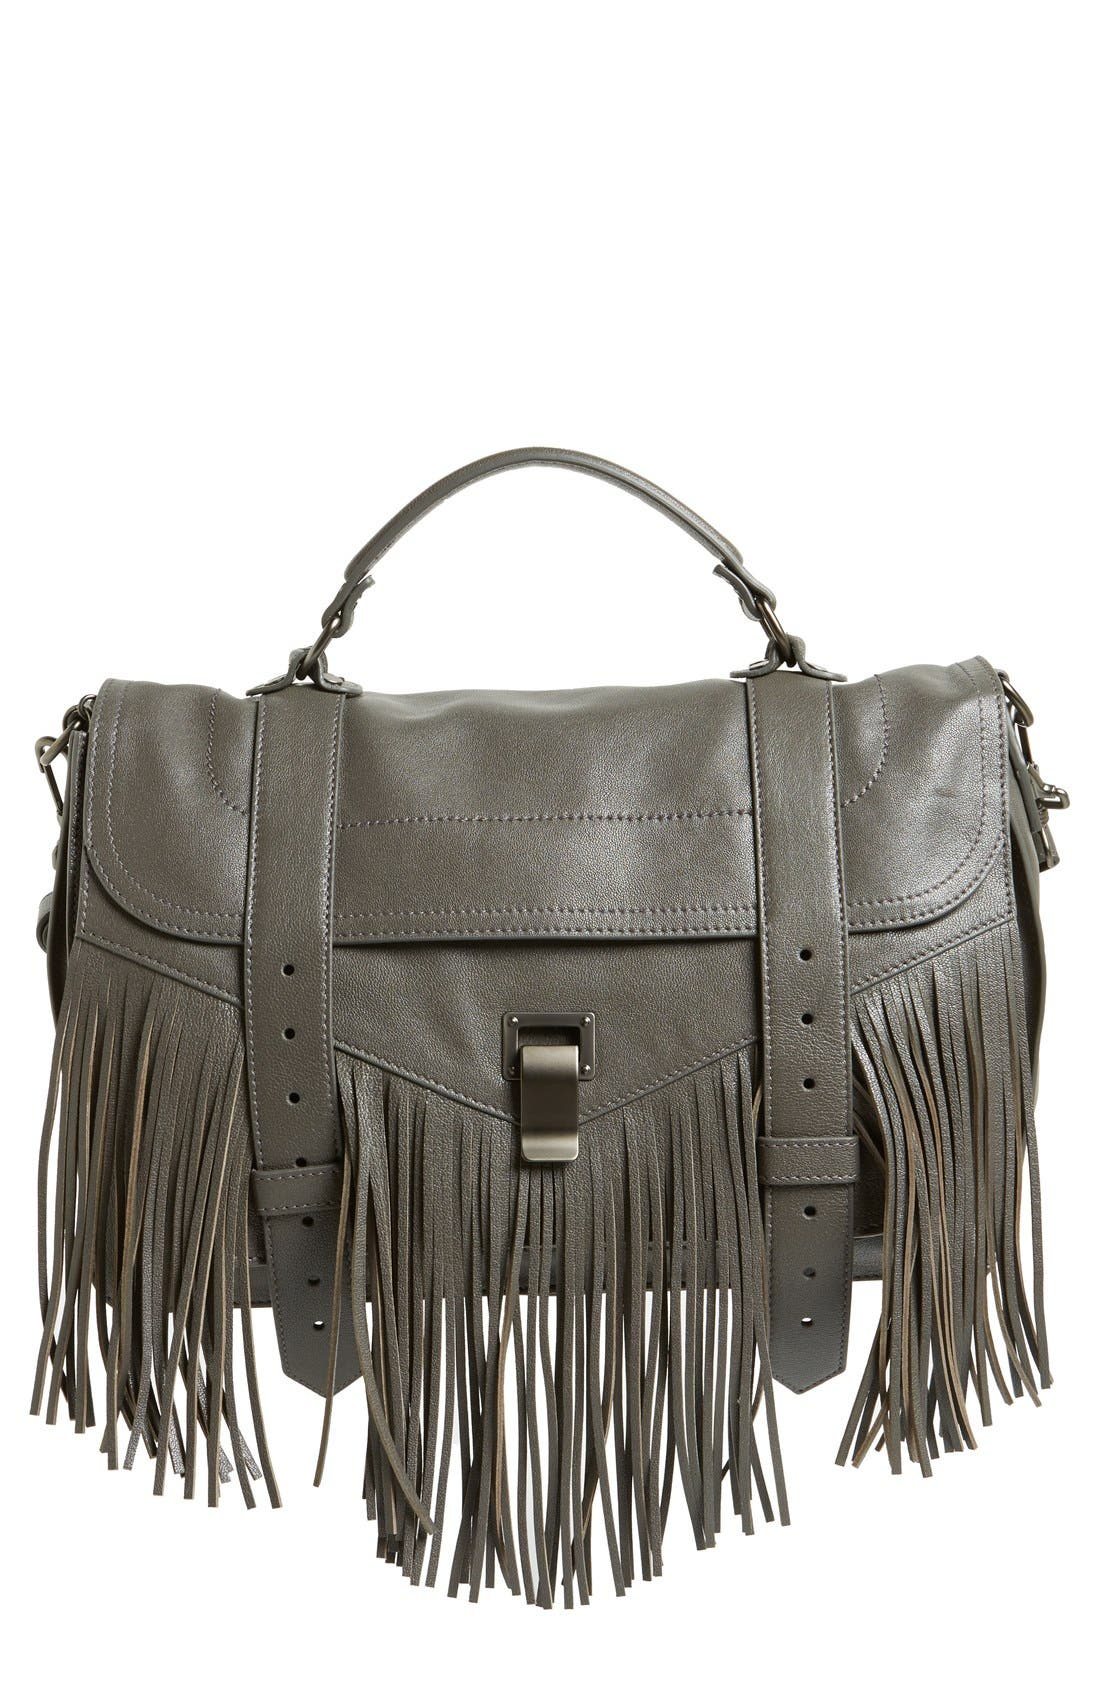 Alternate Image 1 Selected - Proenza Schouler 'Medium PS1' Fringed Leather Satchel